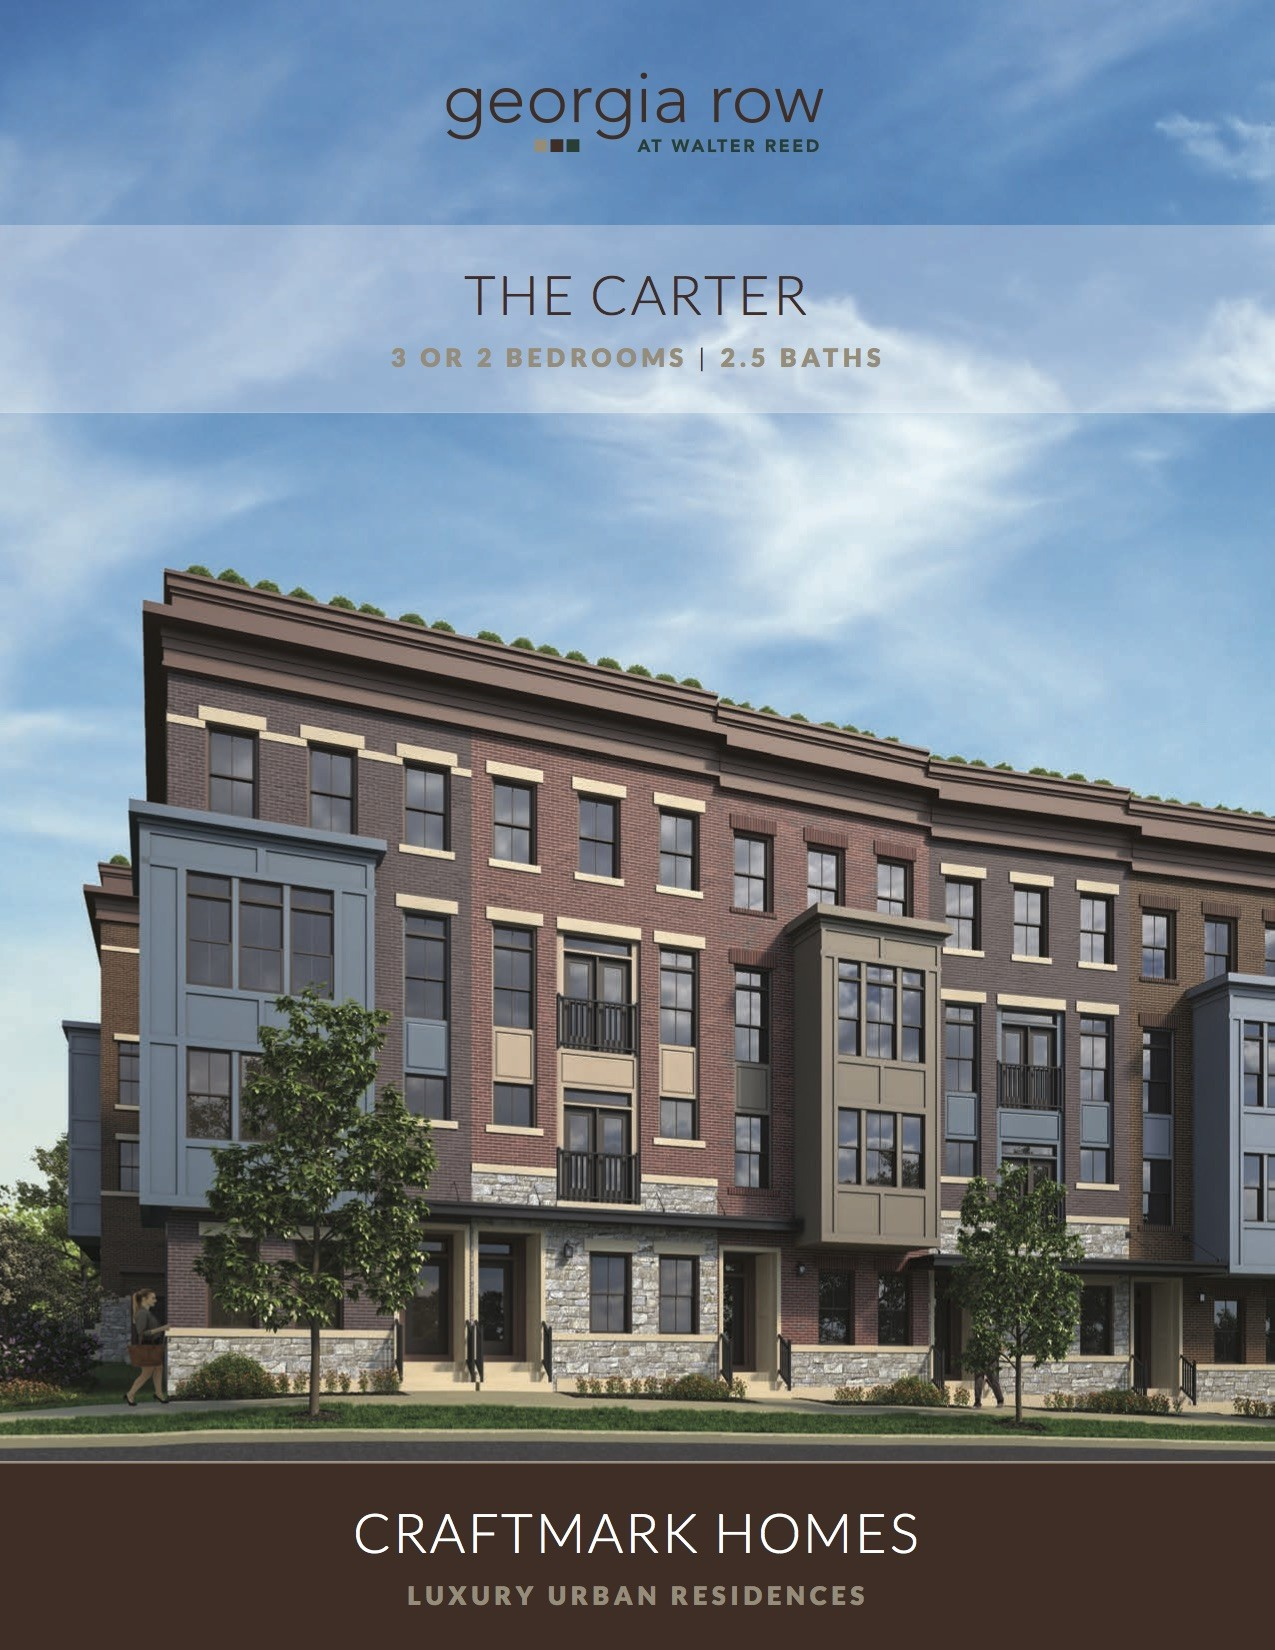 The Carter by Craftmark Homes